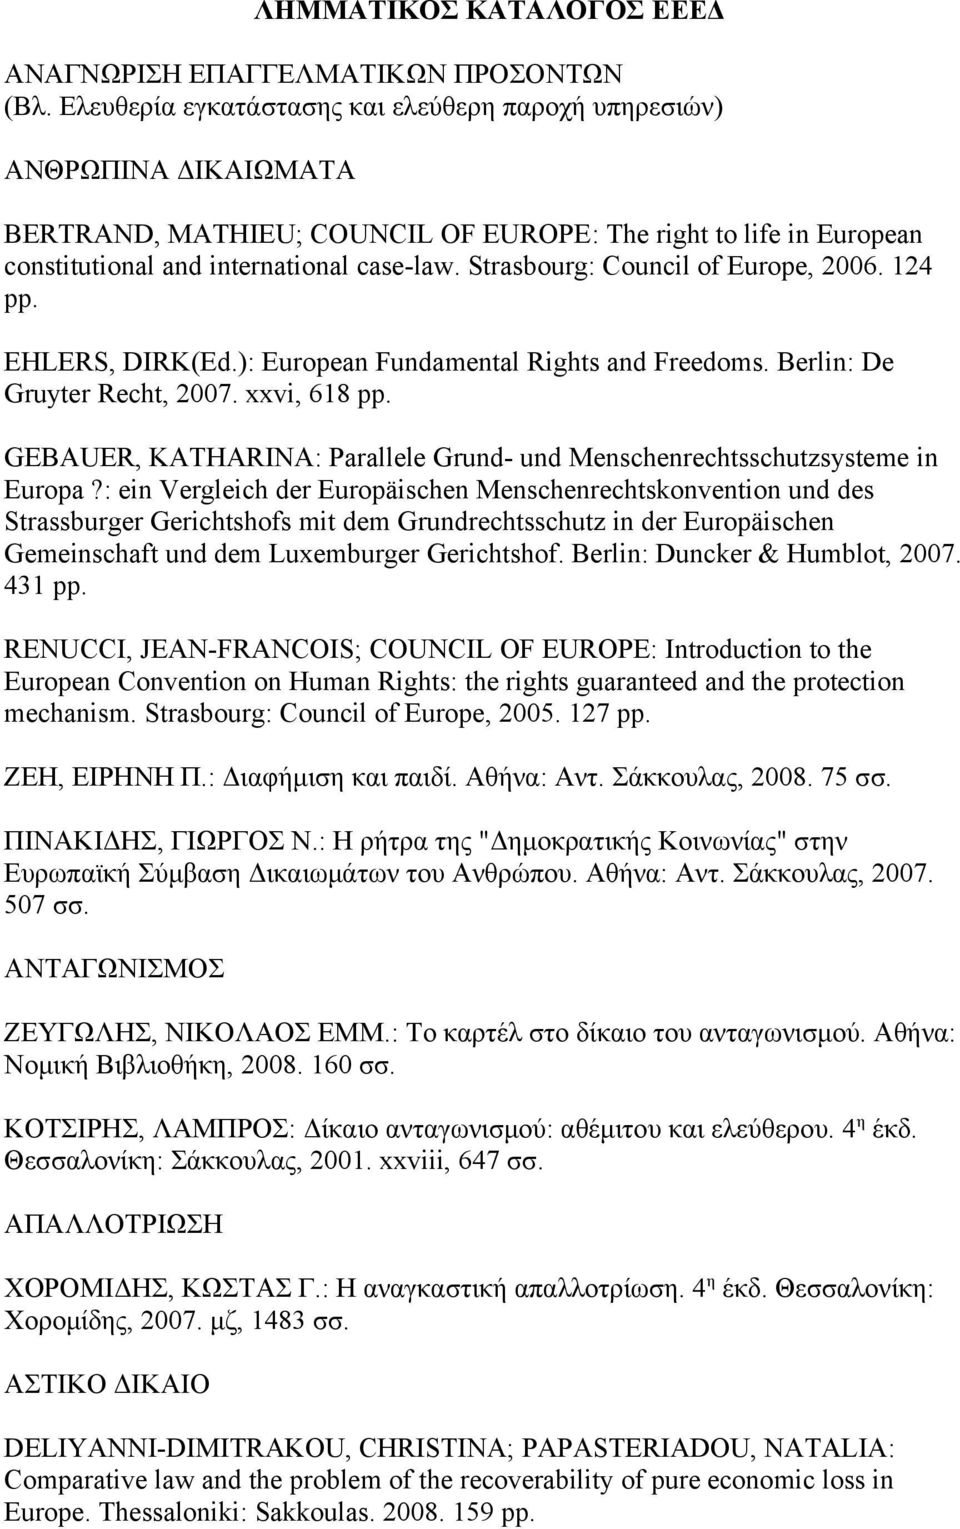 Strasbourg: Council of Europe, 2006. 124 pp. EHLERS, DIRK(Ed.): European Fundamental Rights and Freedoms. Berlin: De Gruyter Recht, 2007. xxvi, 618 pp.